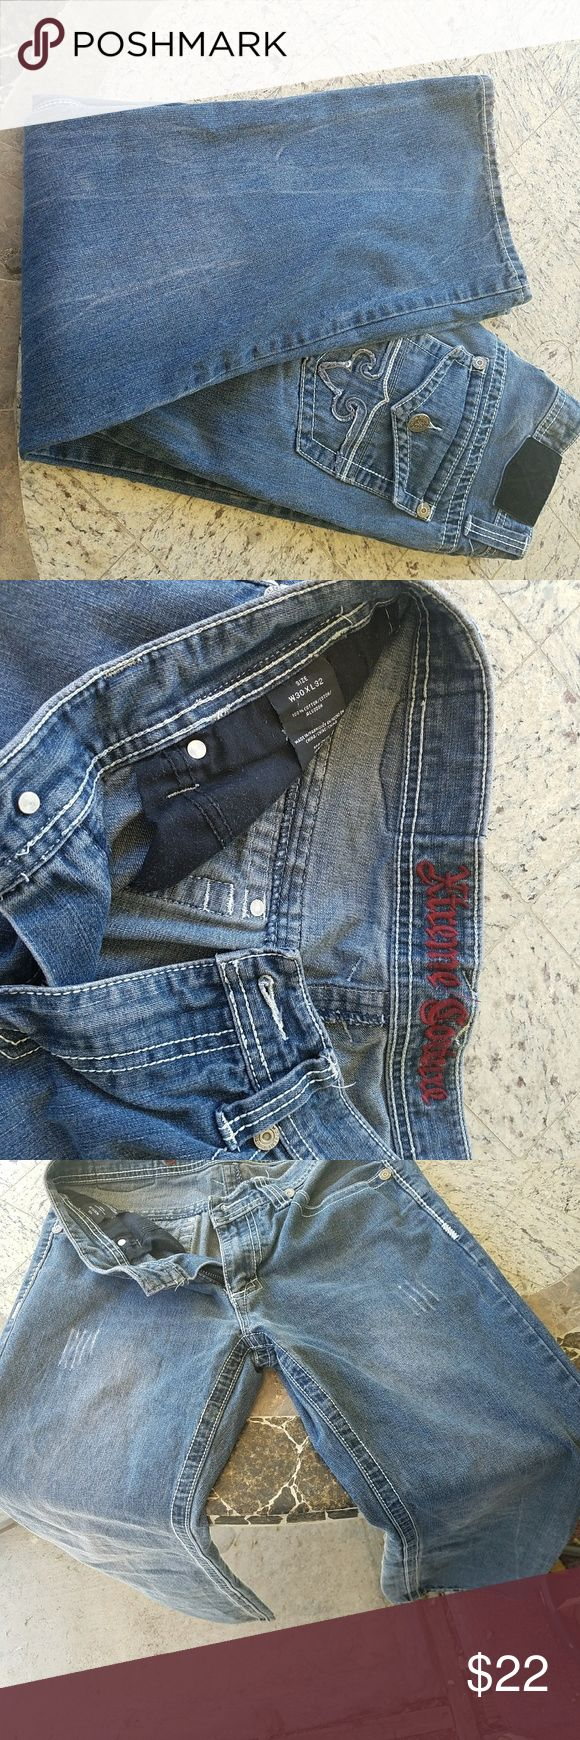 Xtreme Couture jeans for men Size 30 extreme Contour jeans for men 32 inseam like new good-looking jeans extreme Contour Jeans Bootcut